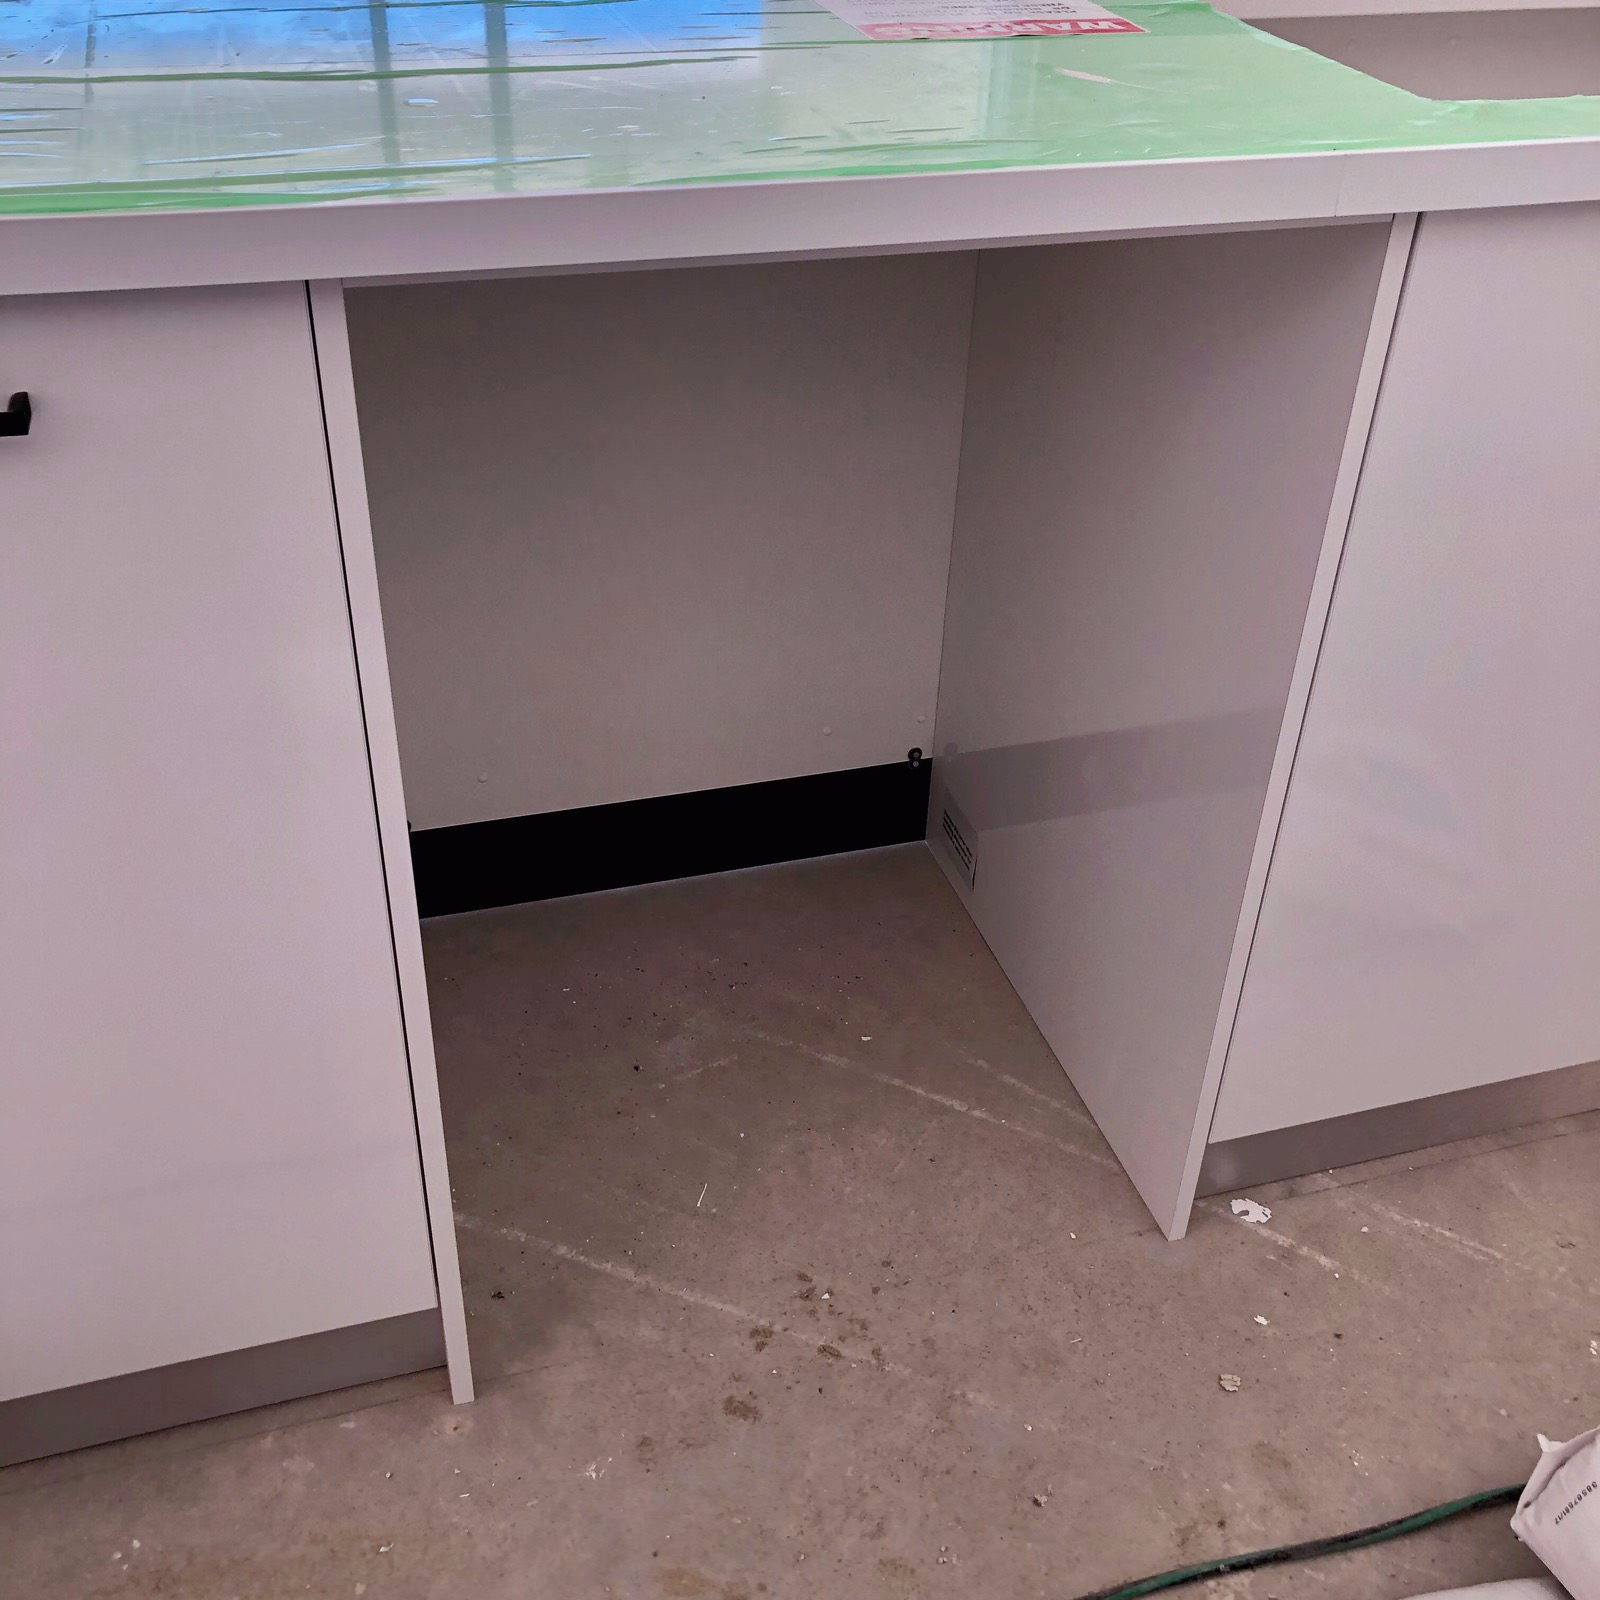 Dishwasher Recess / Built-In